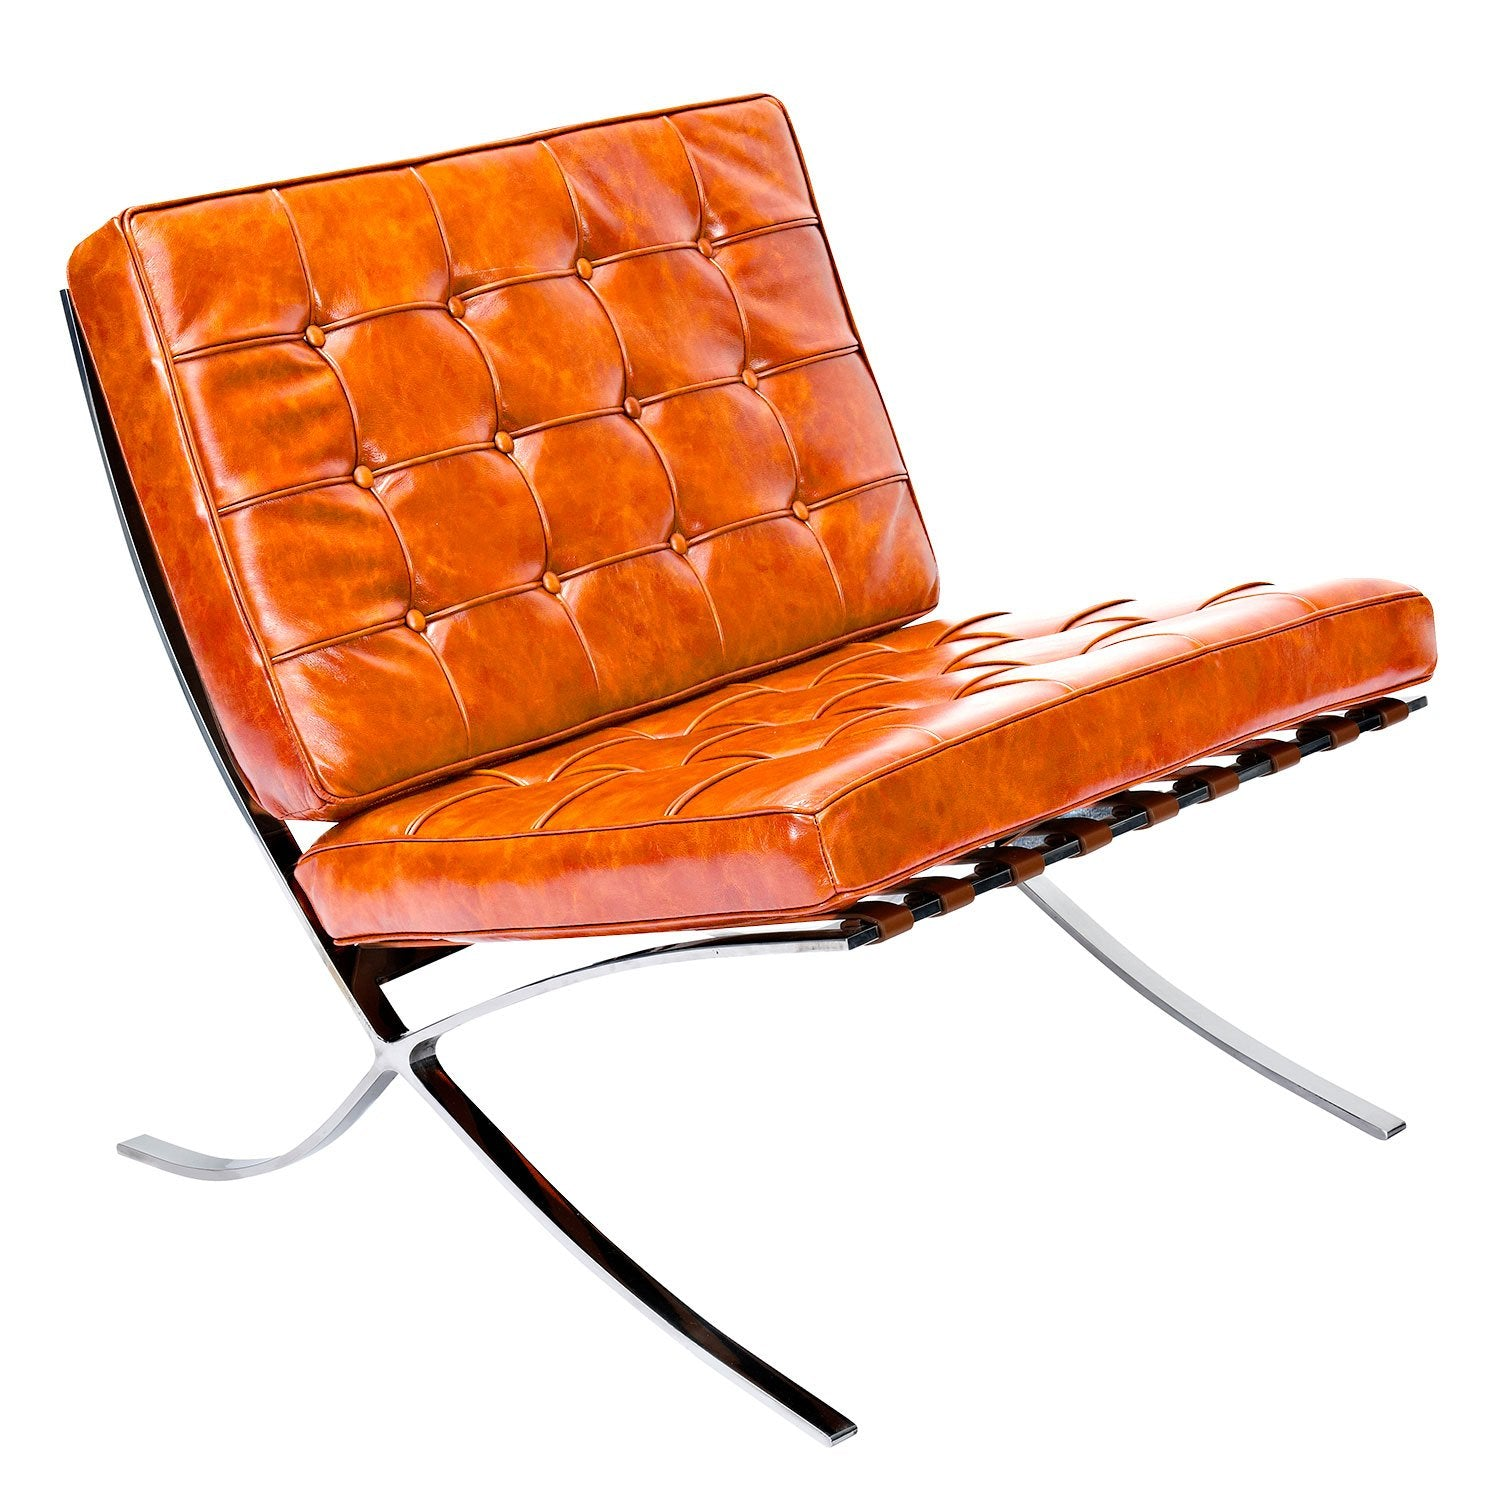 Mies Lounge Chair and Ottoman in Burnt Orange Leather on Stainless Ste